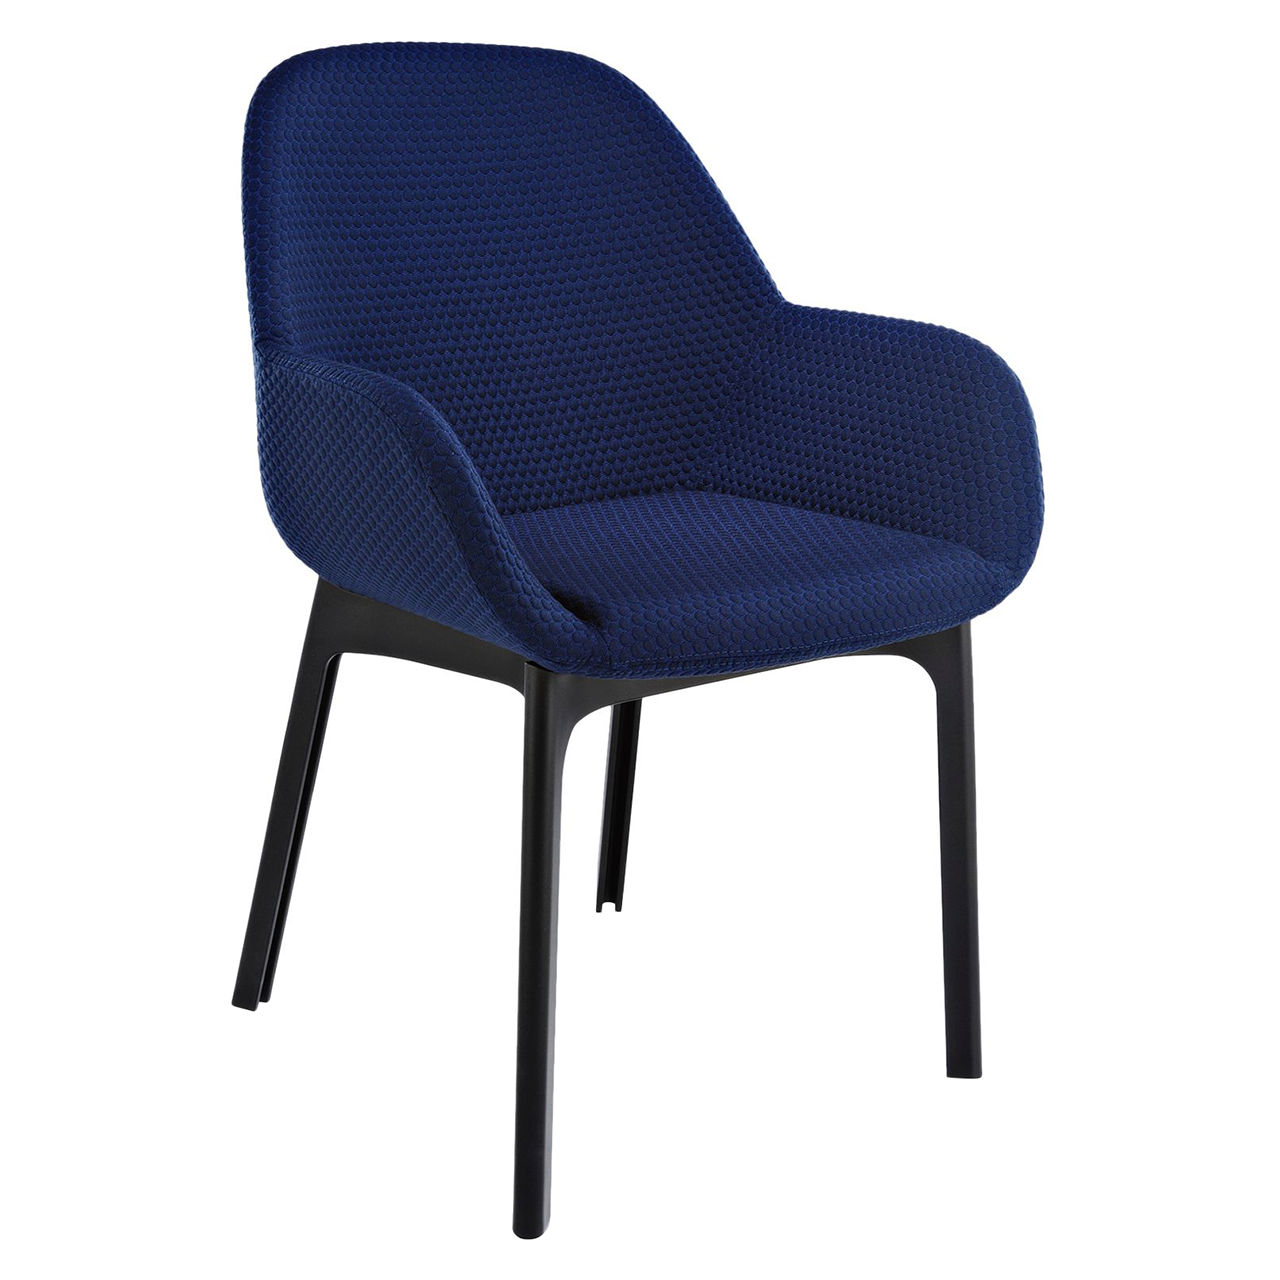 Clap Melange Chair in Black and Blue by Kartell